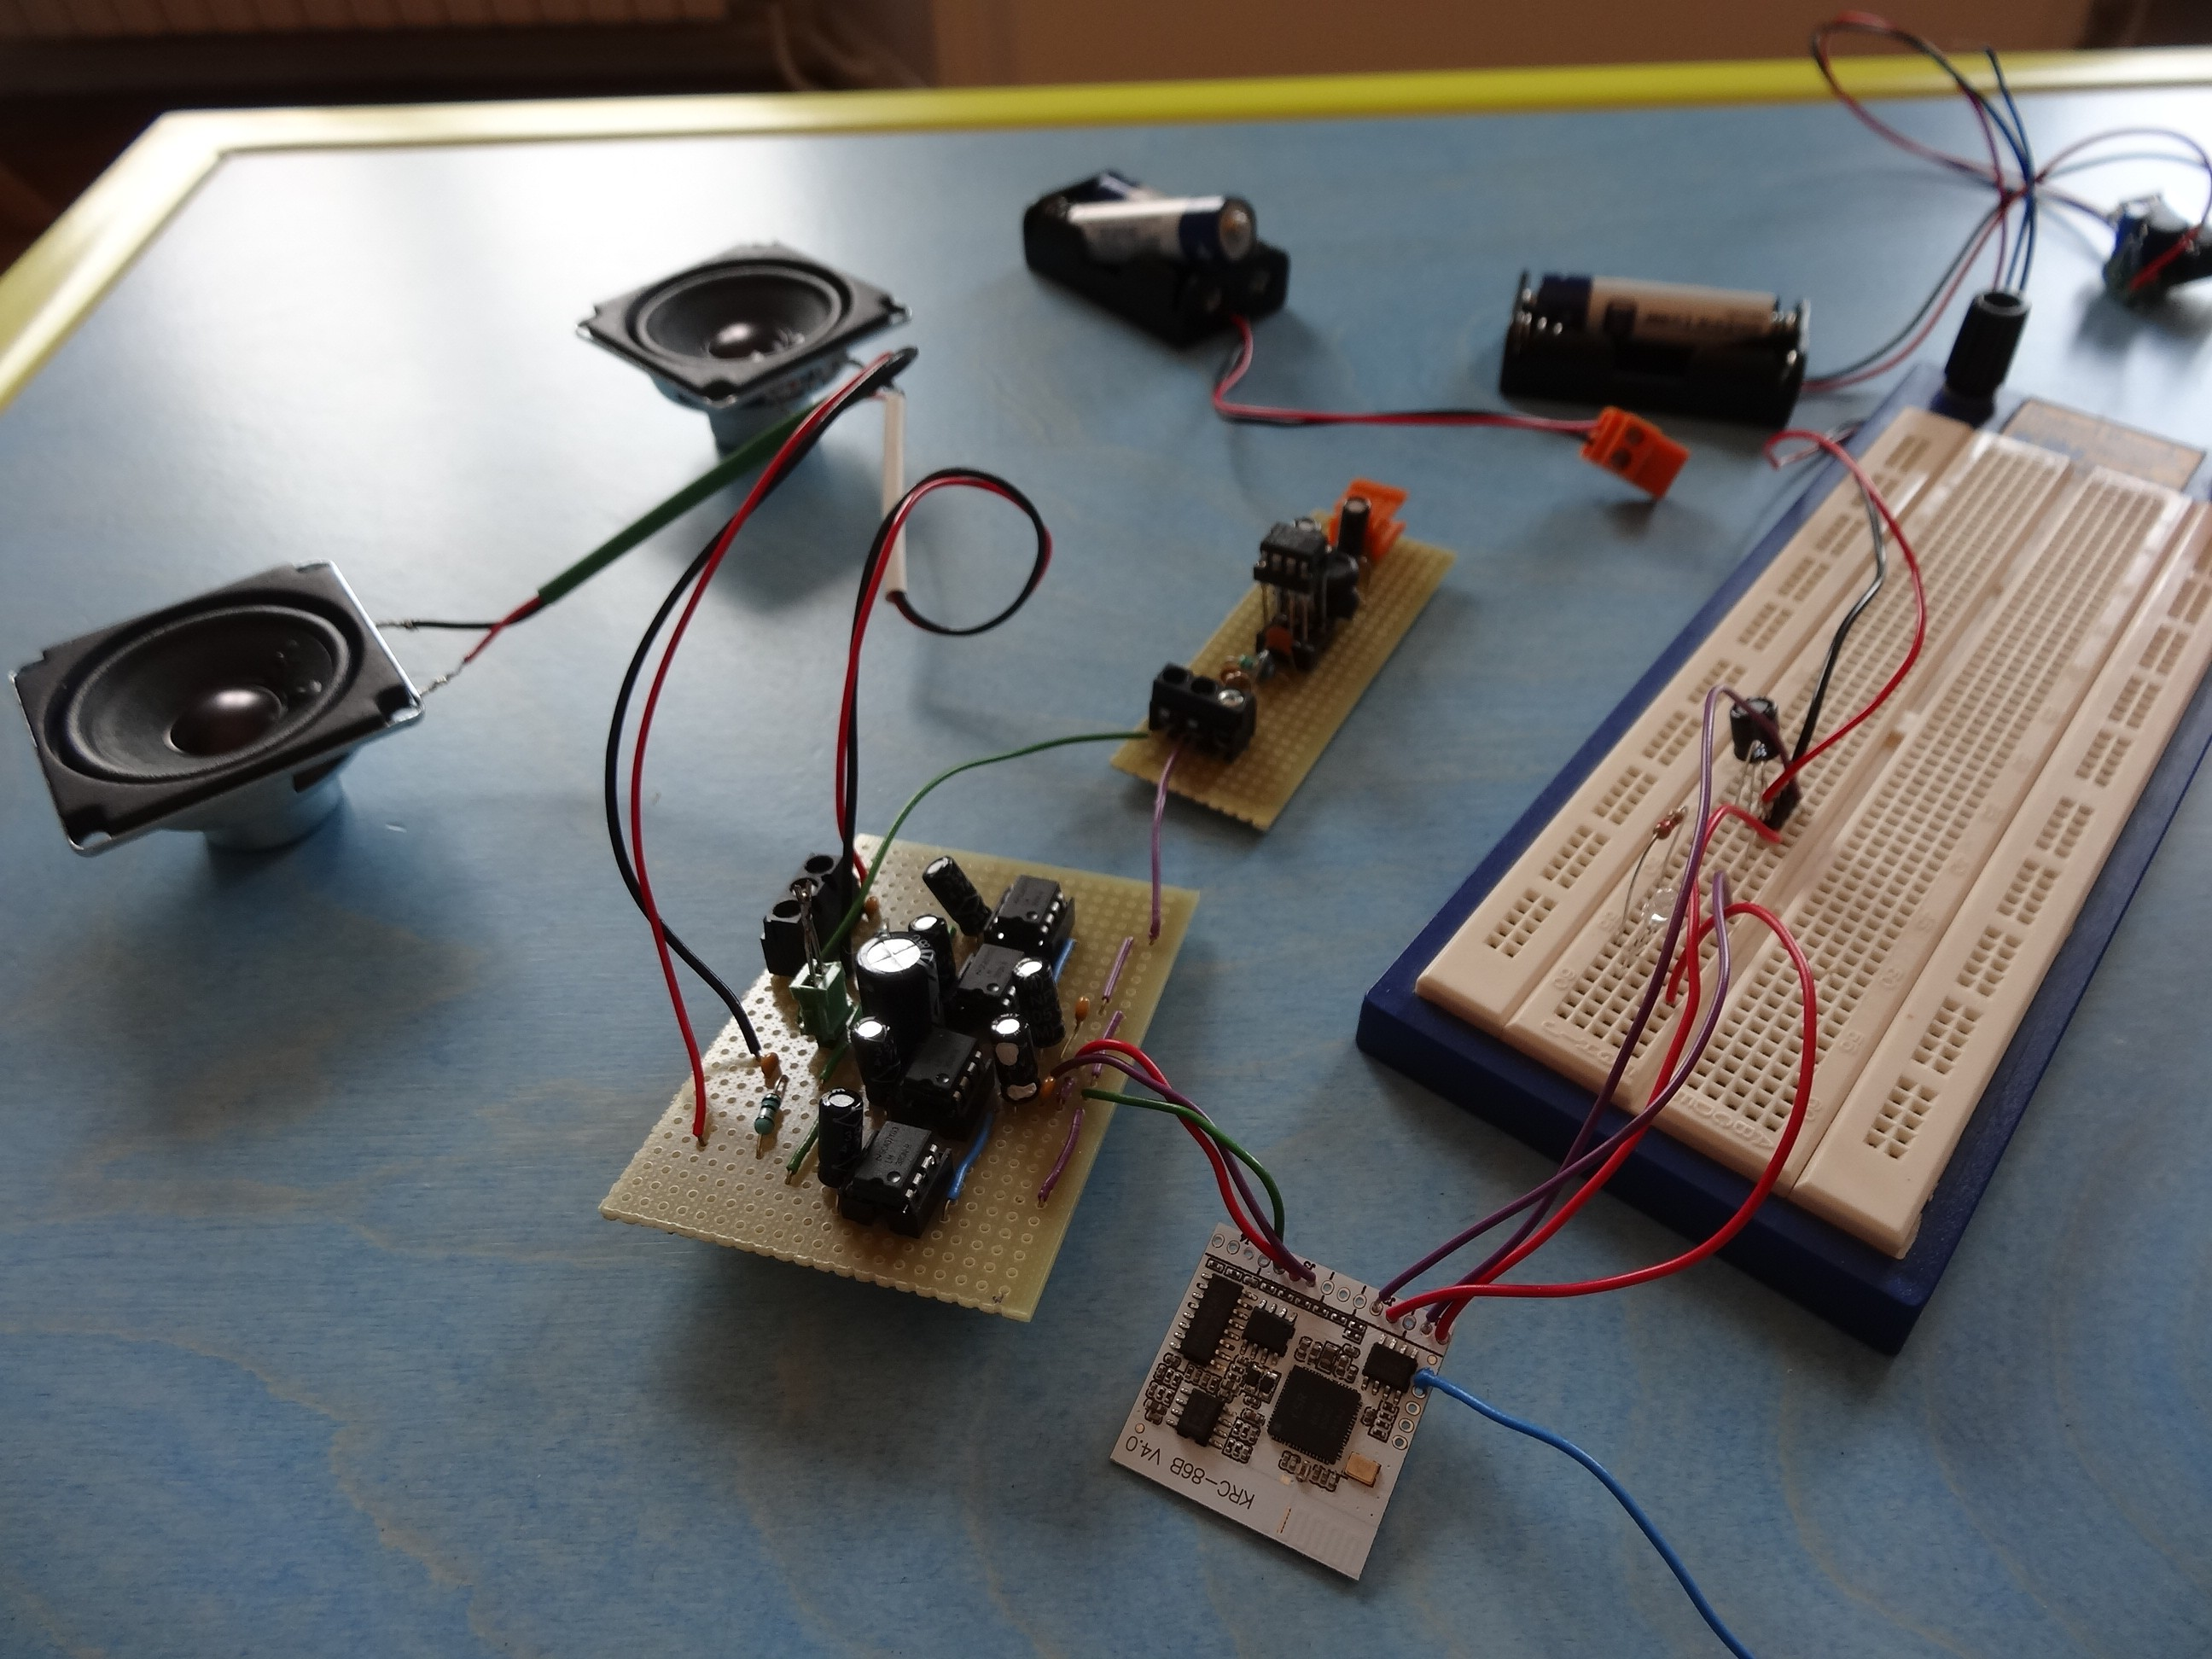 Portable Stereo Speaker Lm380 25w Audio Power Amplifier Electronic Projects Circuits To Supply 12v The We Worked On A Little Device That Deliver It With Aa Batteries Are Going Write Another Hackaday